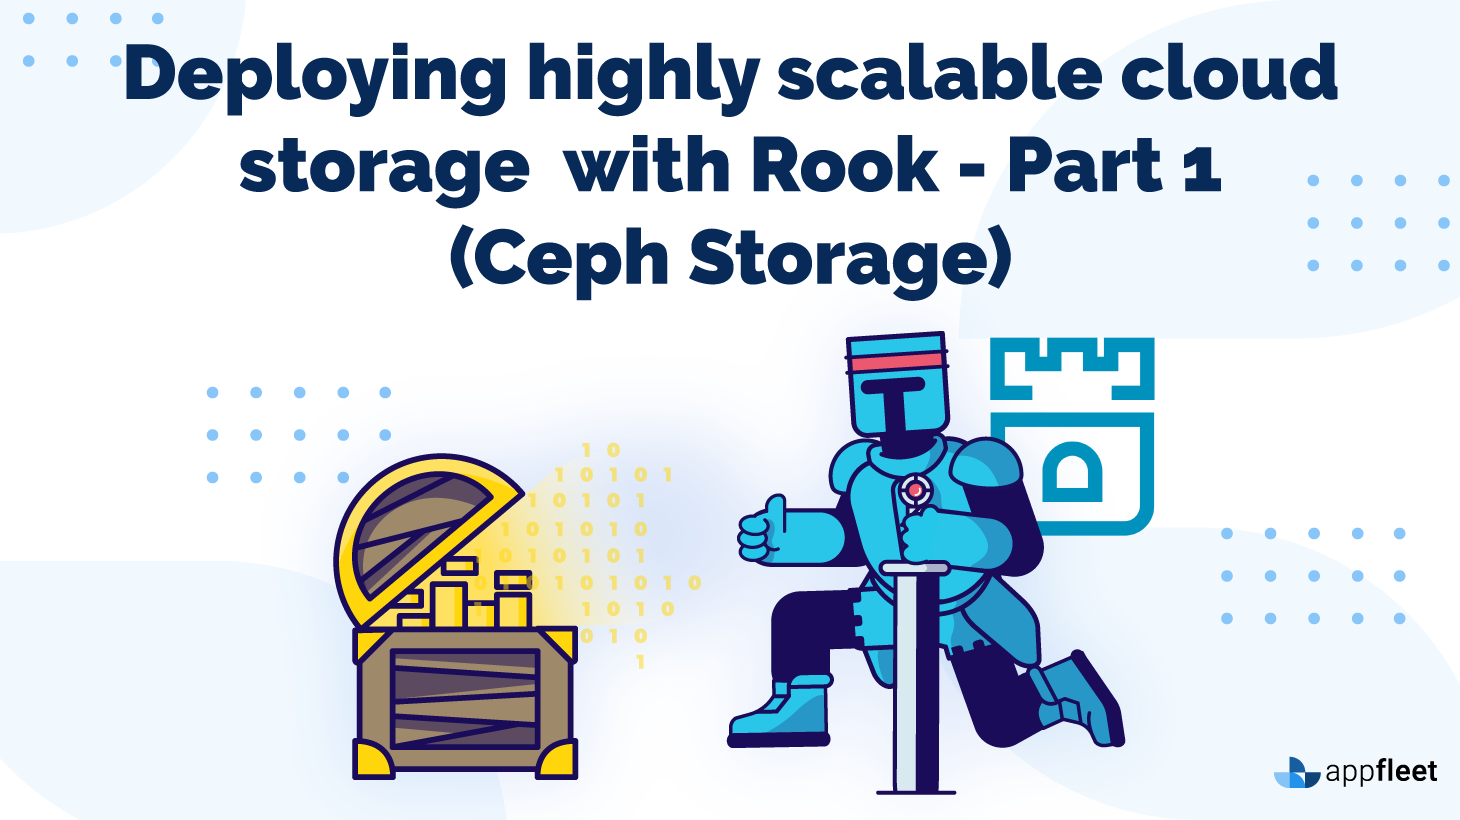 Deploying highly scalable cloud storage with Rook - Part 1 (Ceph Storage)